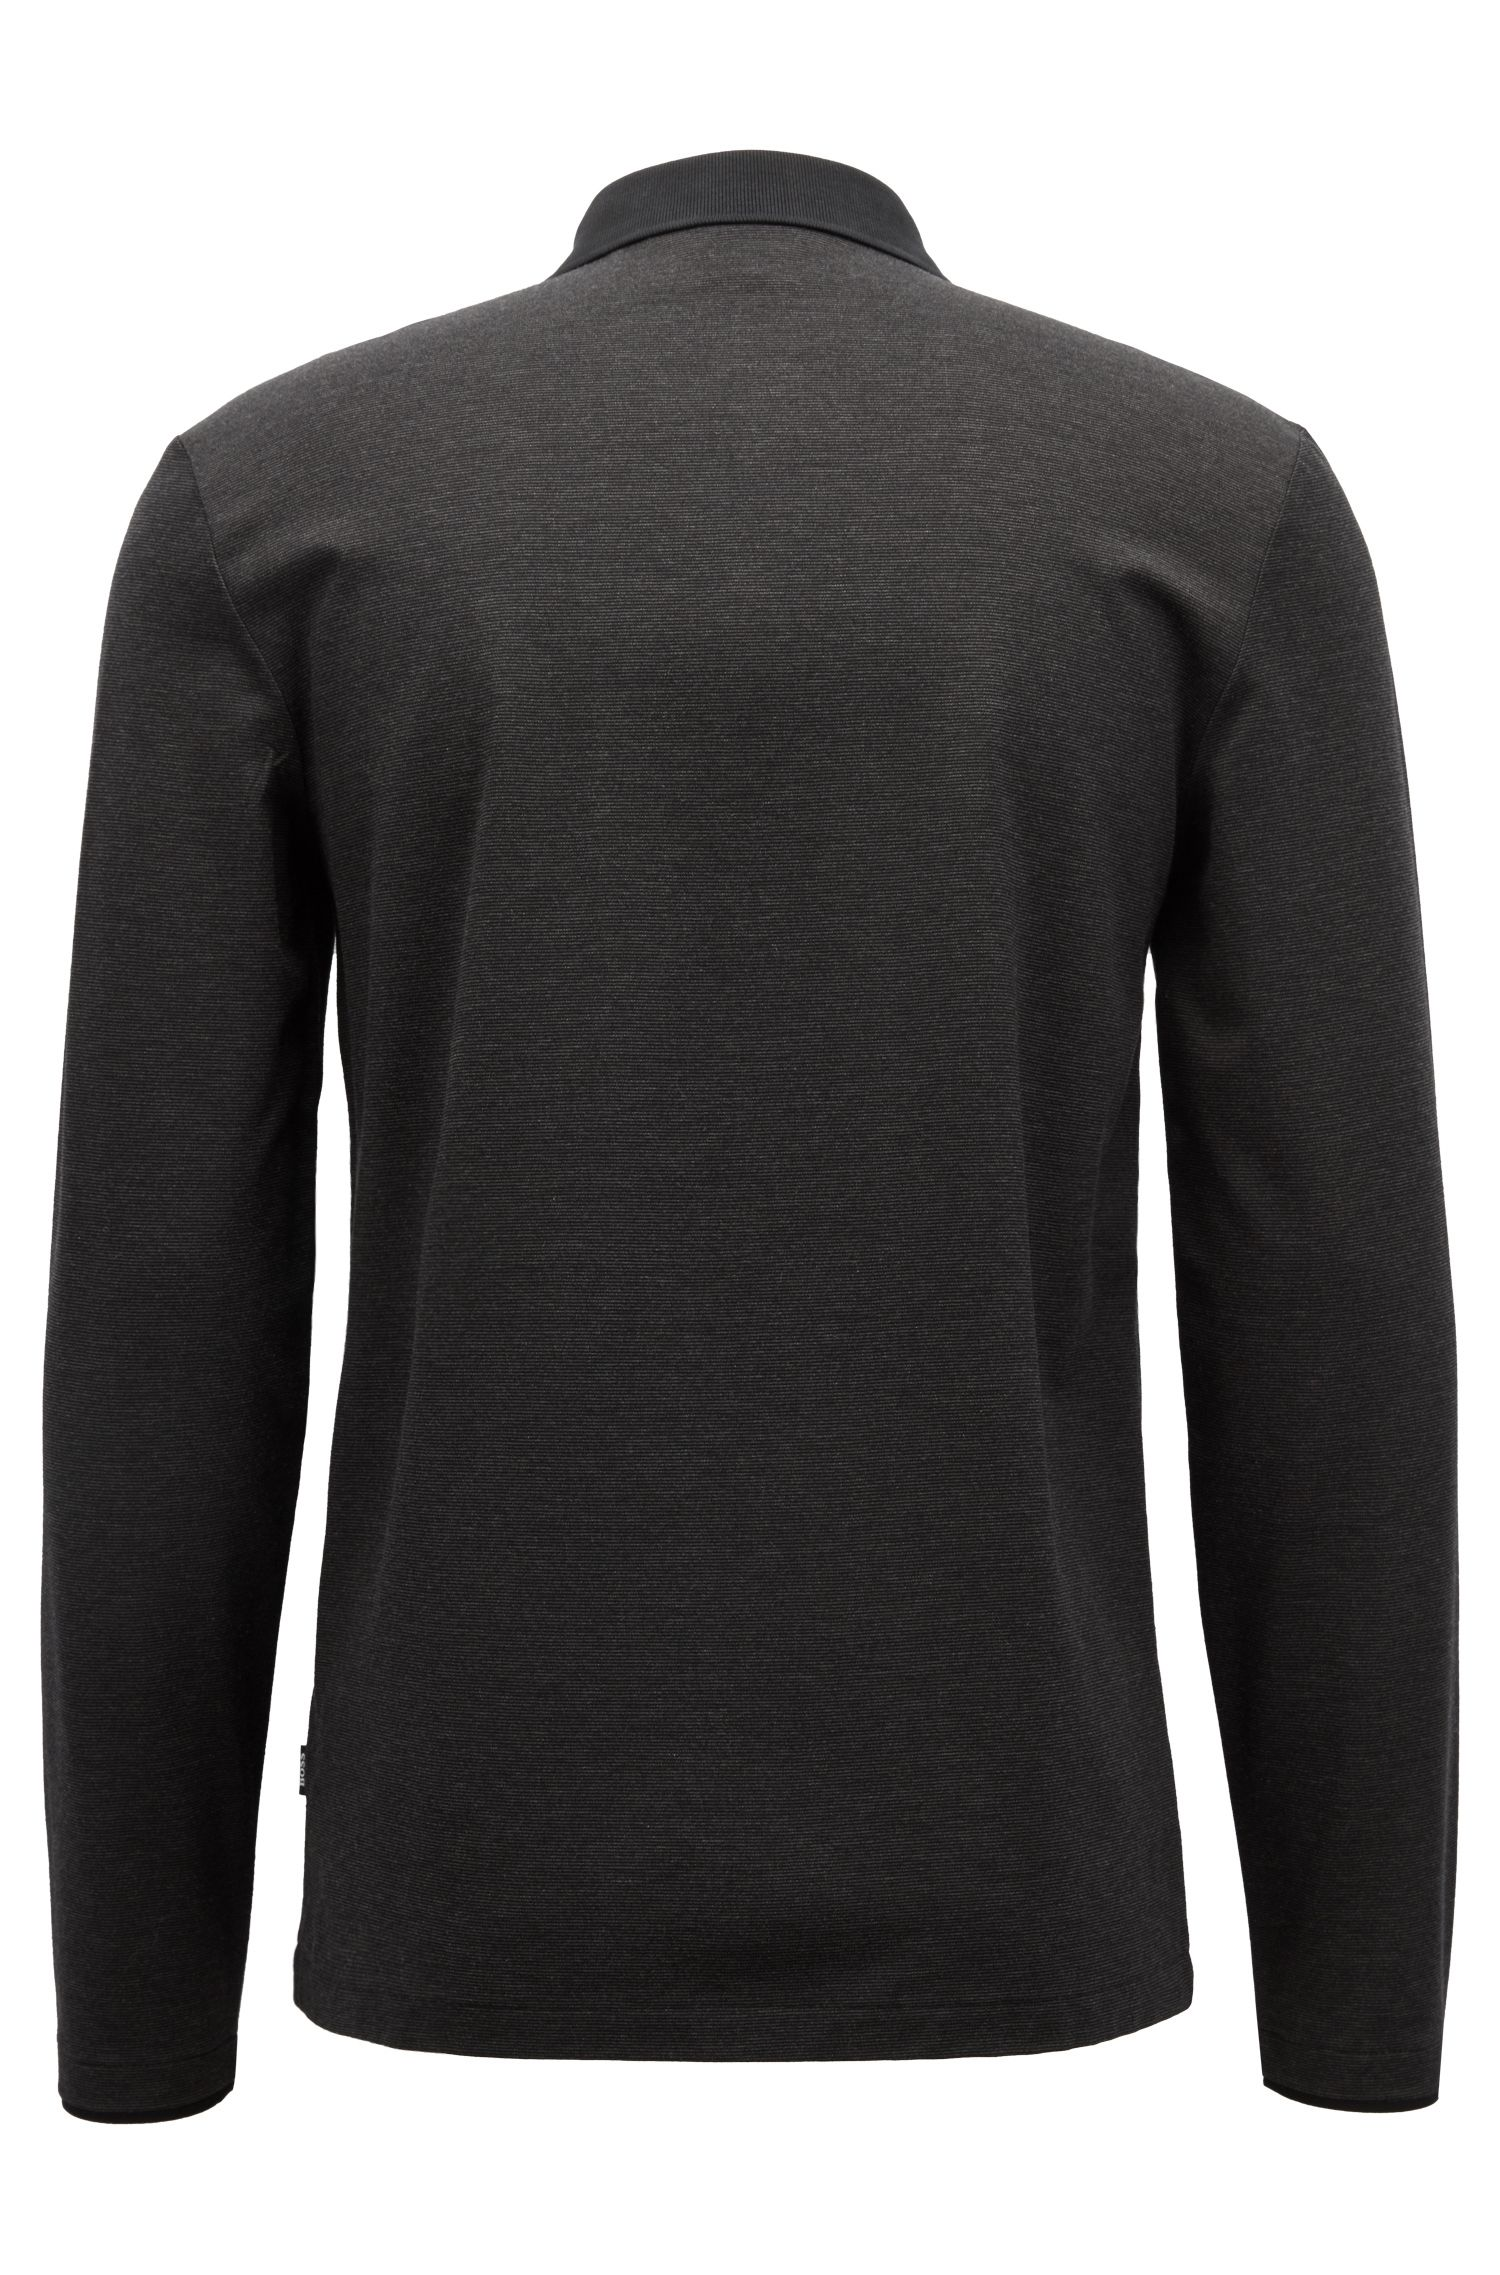 Long-sleeved polo shirt in finely striped mercerised cotton